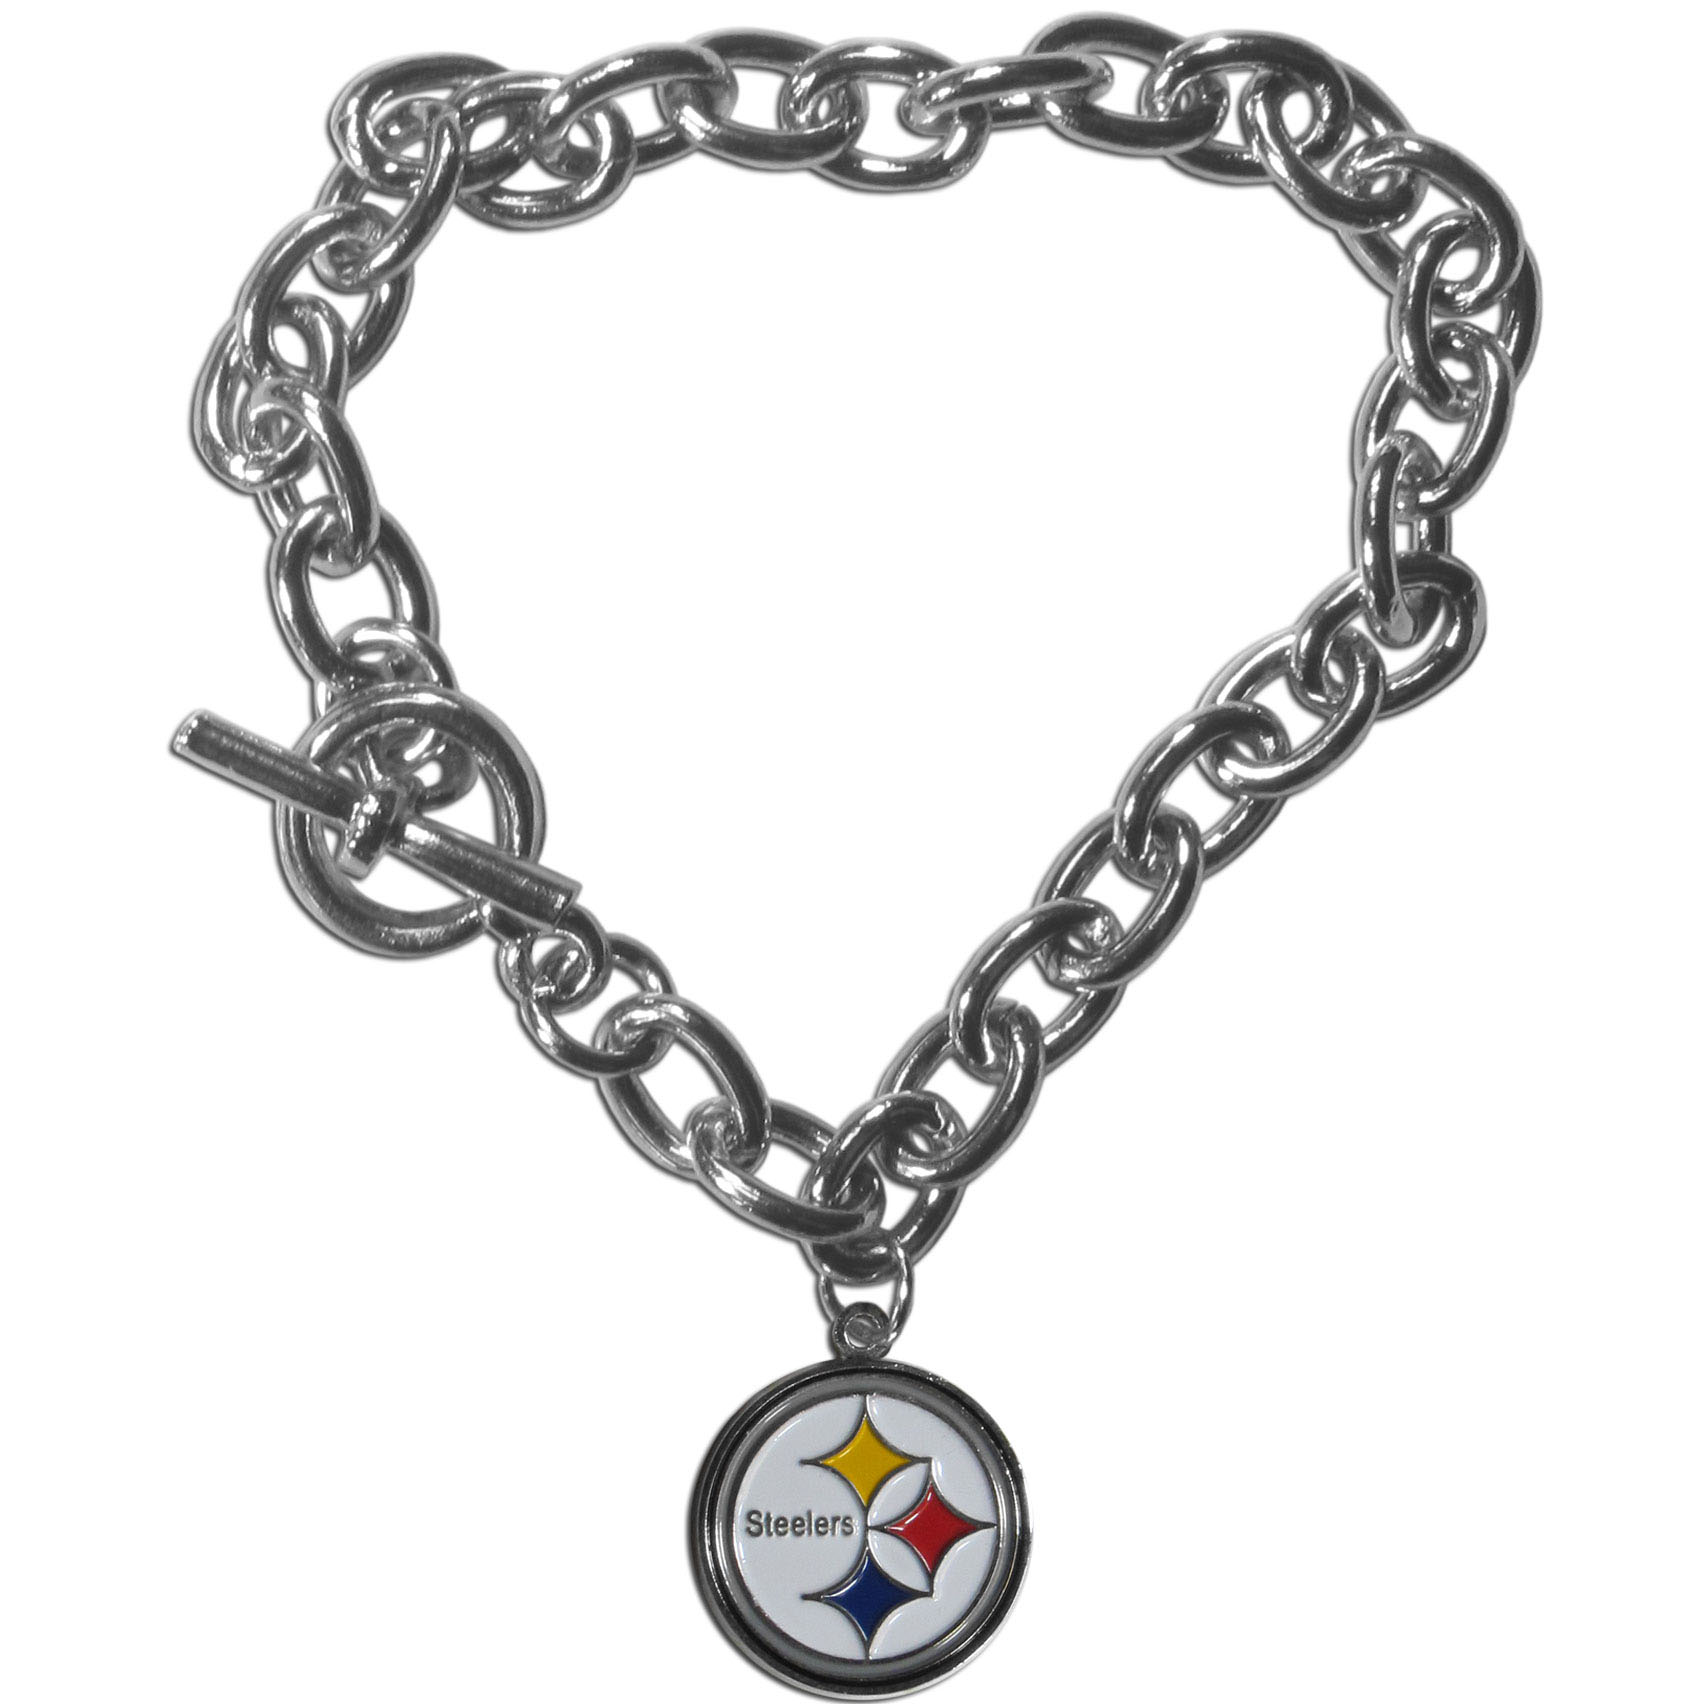 Pittsburgh Steelers Charm Chain Bracelet - Our classic single charm bracelet is a great way to show off your team pride! The 7.5 inch large link chain features a high polish Pittsburgh Steelers charm and features a toggle clasp which makes it super easy to take on and off.